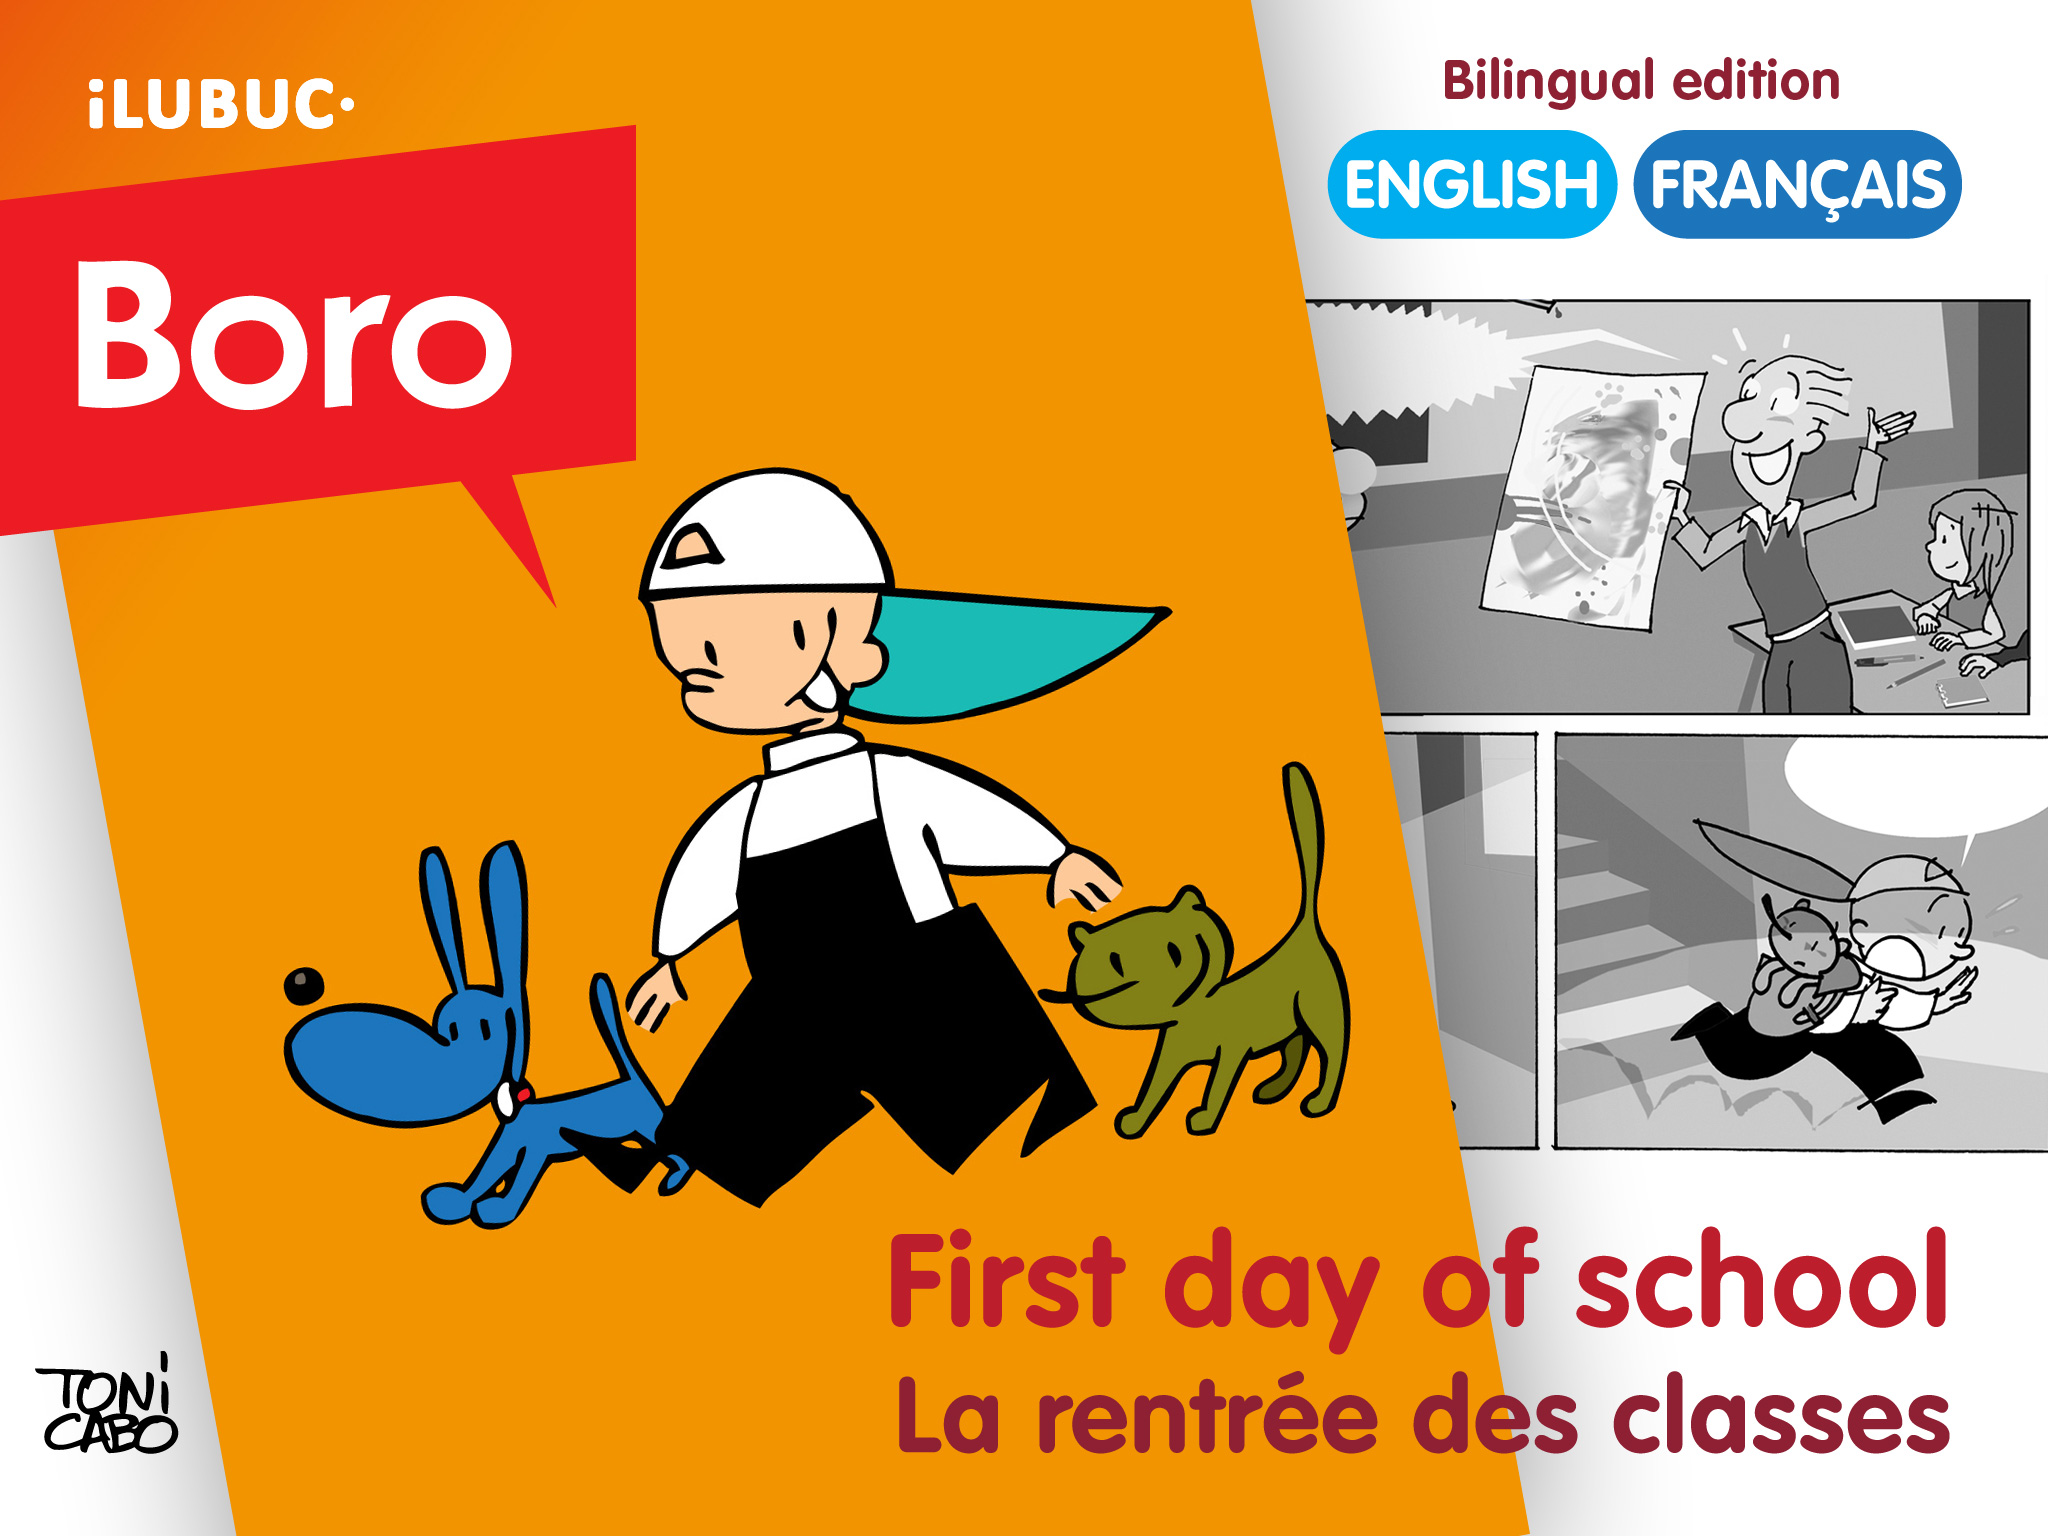 Boro - First day of school / La rentrée des classes